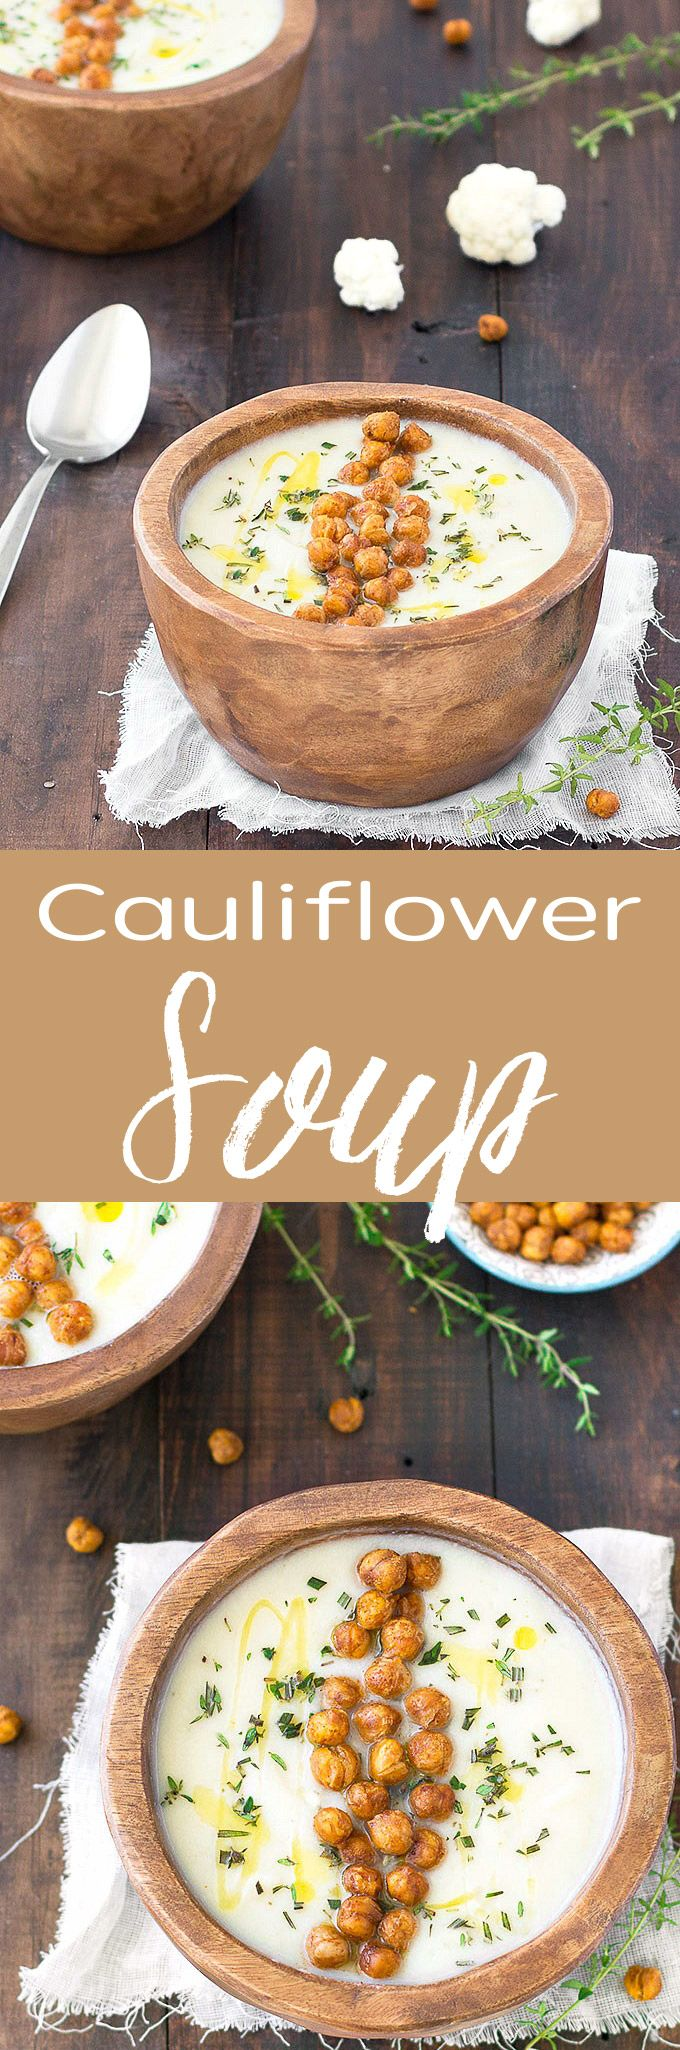 This simple creamy cauliflower soup is filling, healthy, naturally gluten free, low calorie, vegan, and tastes absolutely amazing! It requires only a few basic ingredients and comes together in 30 minutes!